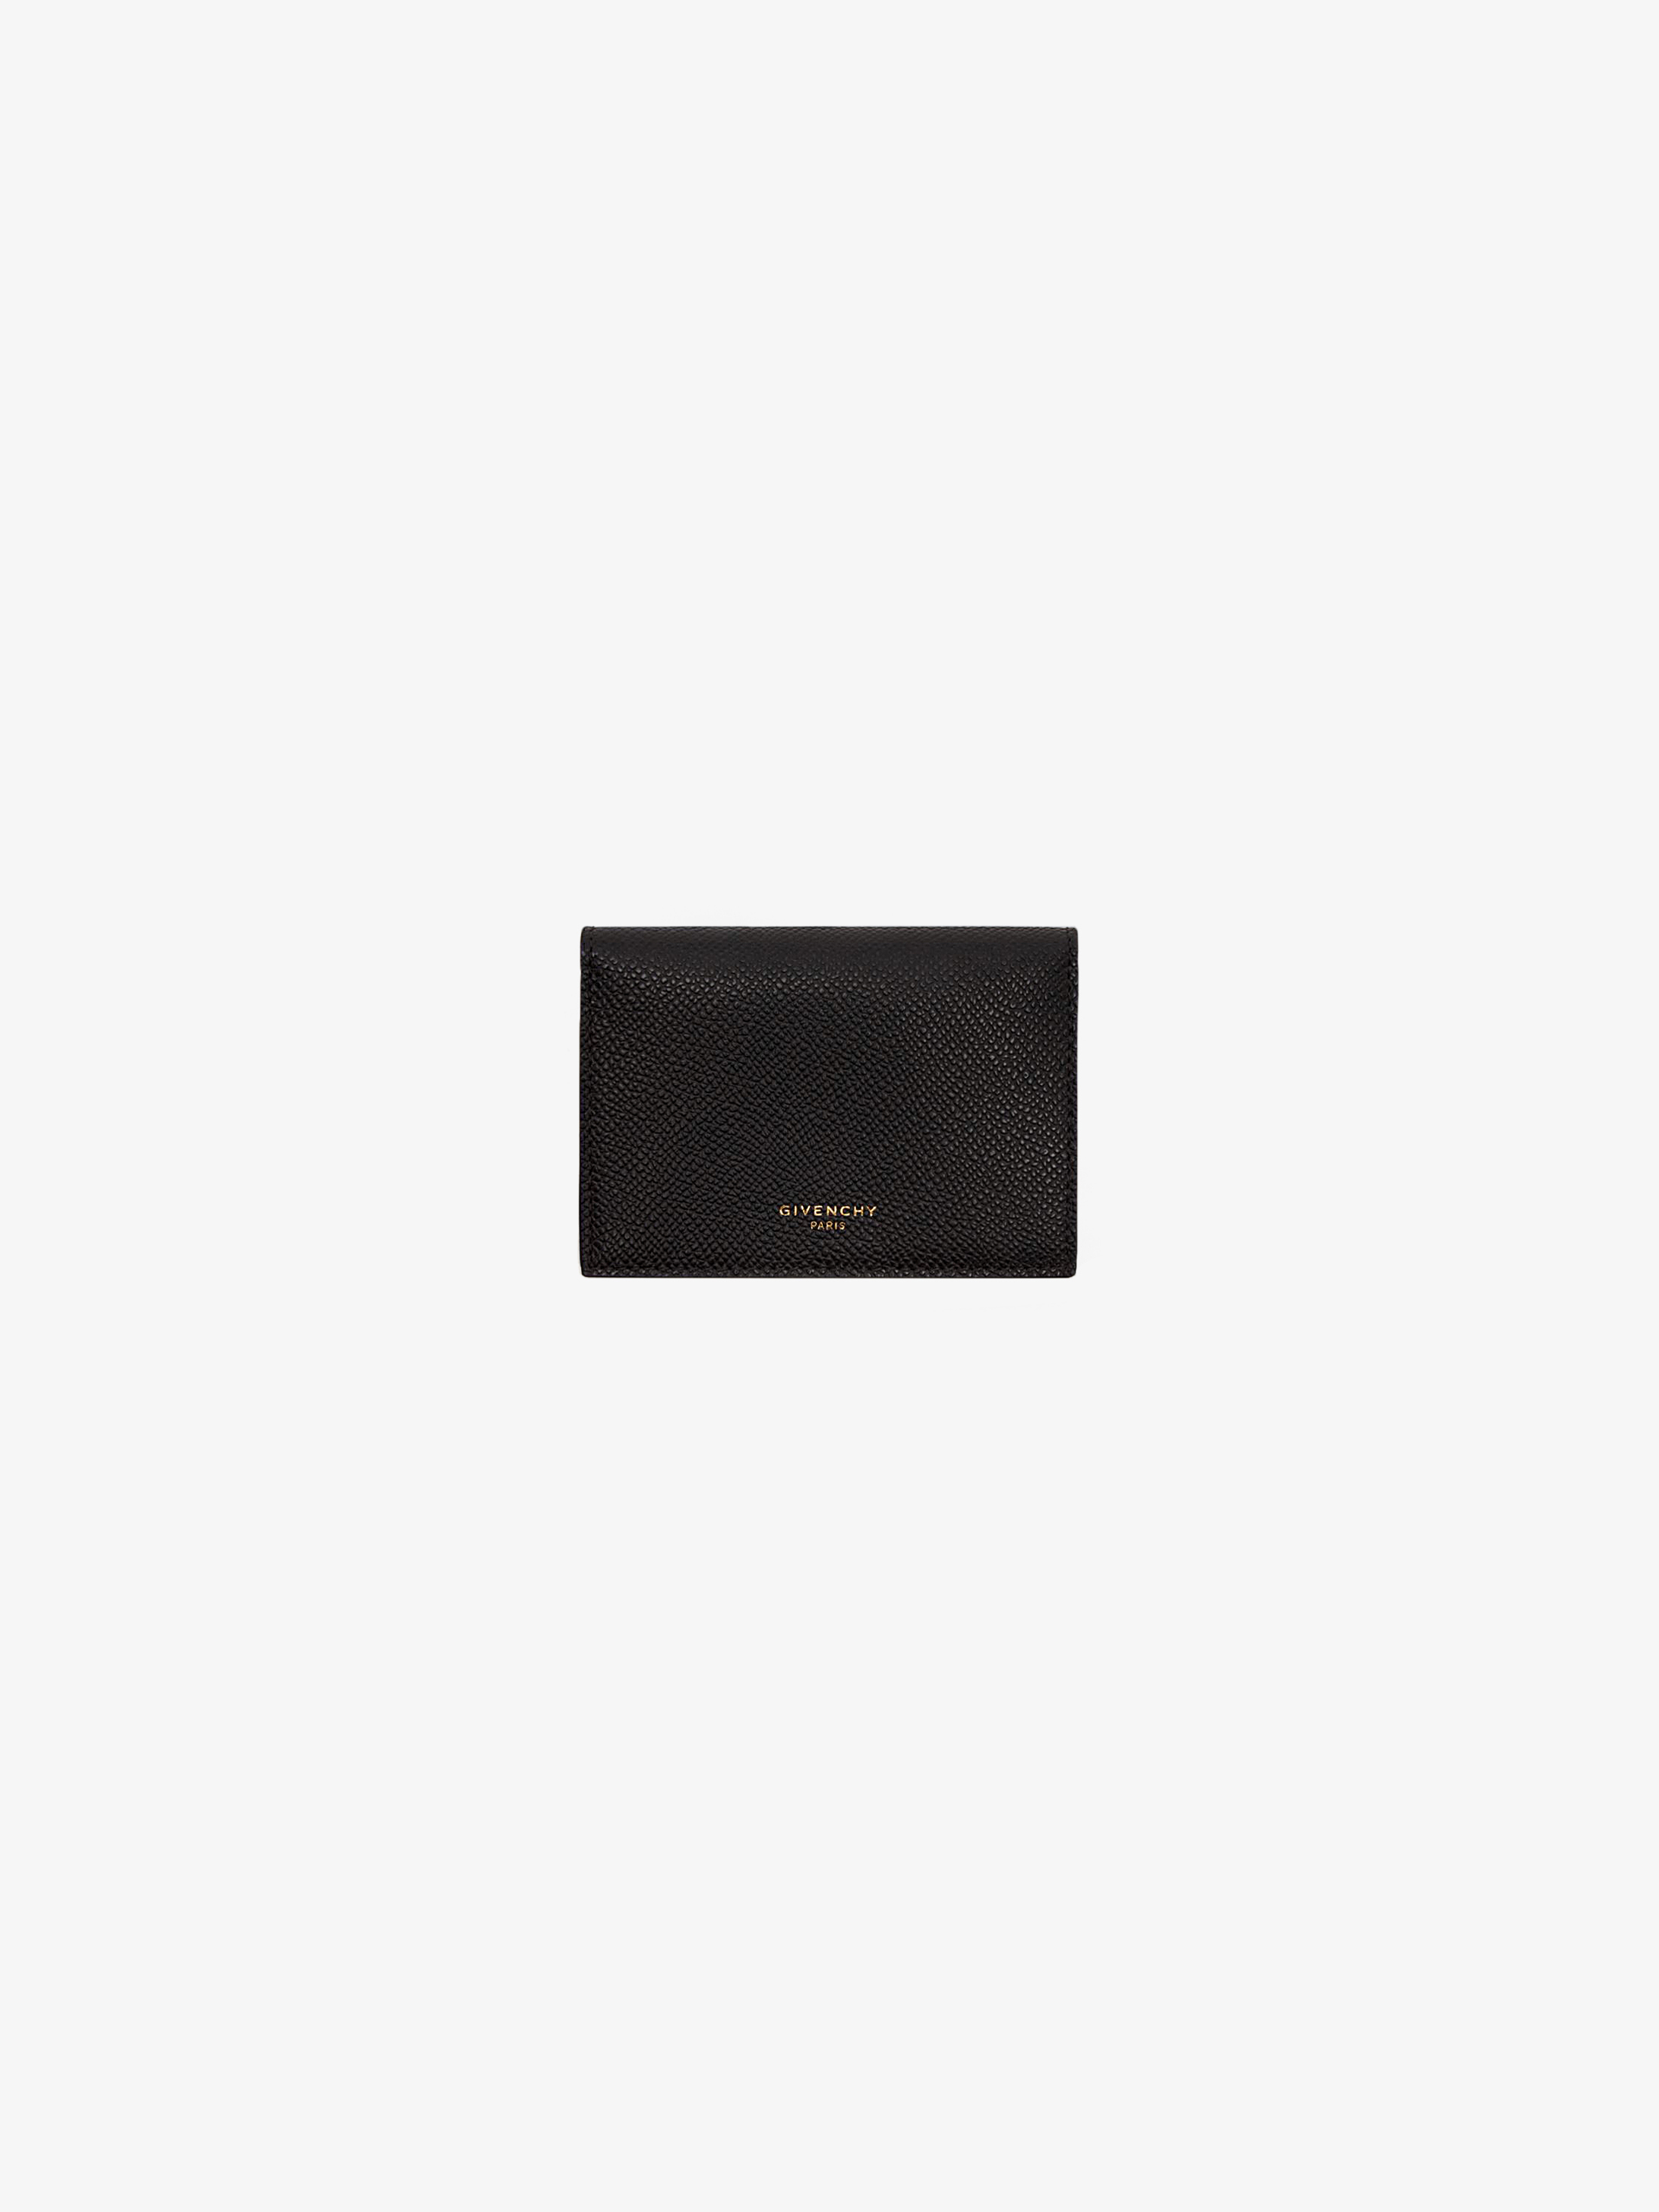 Business card case GIVENCHY PARIS in leather